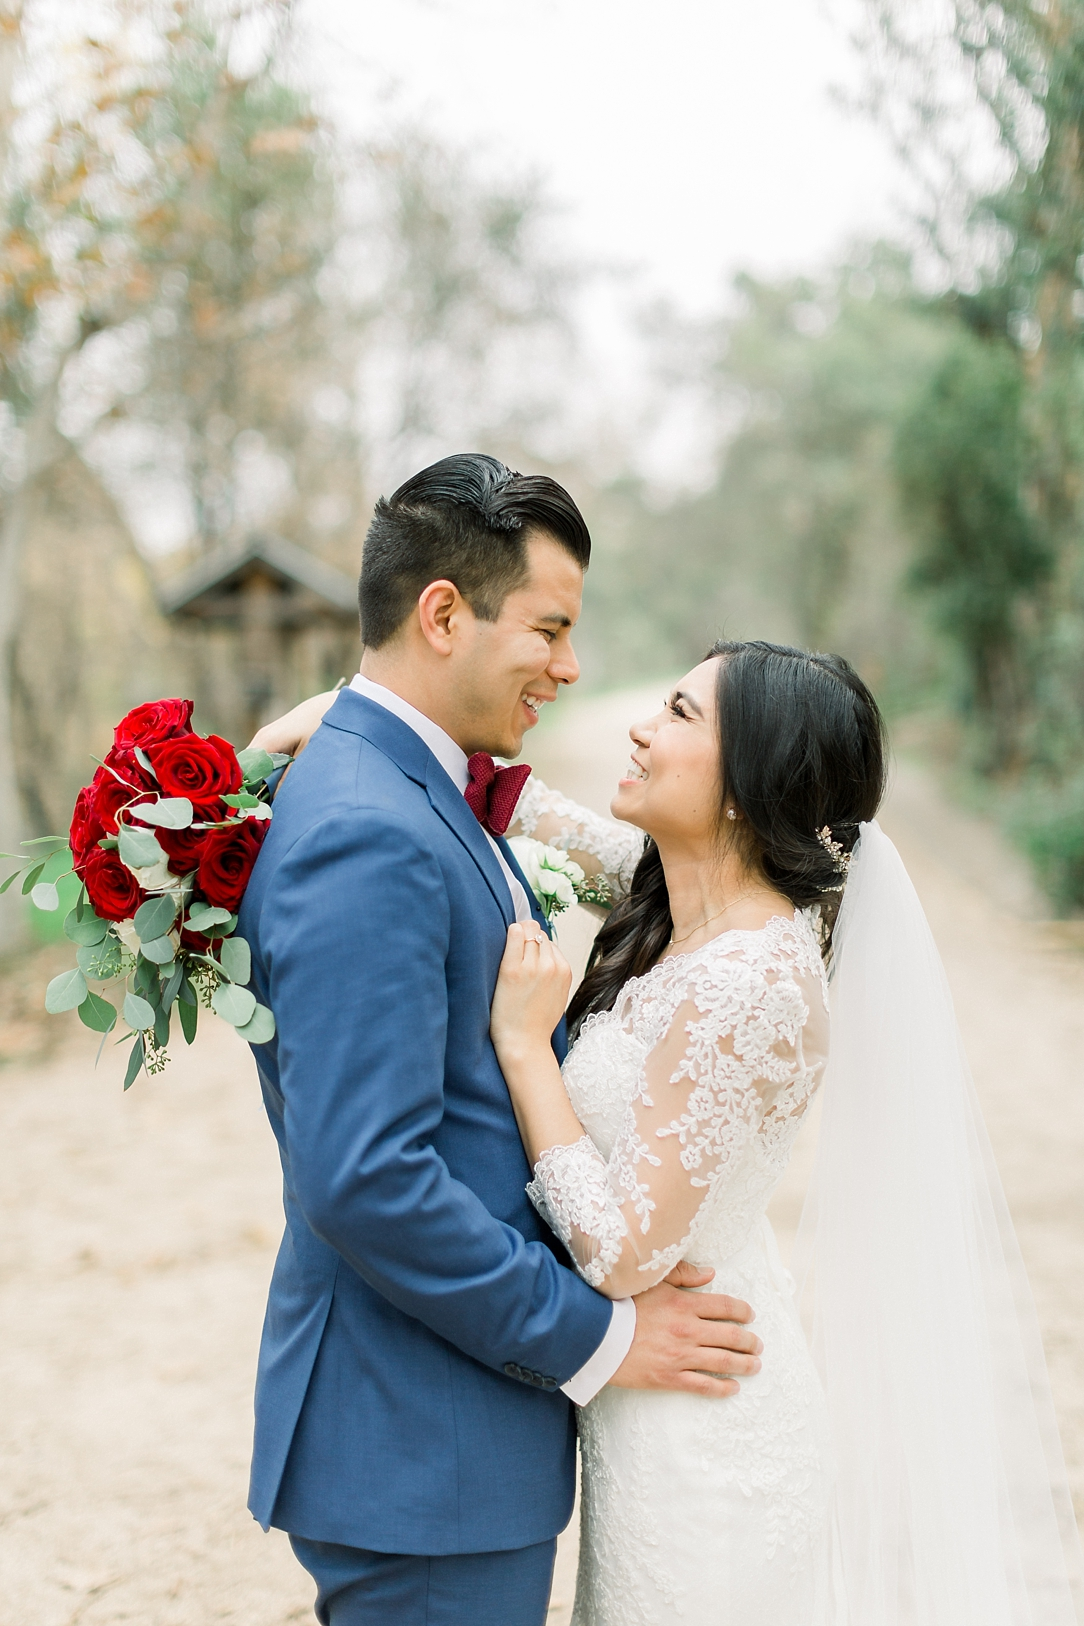 A Vintage Inspired Wedding At Santiago Oaks Regional Park And The Vintage Rose By Natural Light Photographer Madison Ellis Photography. (49)